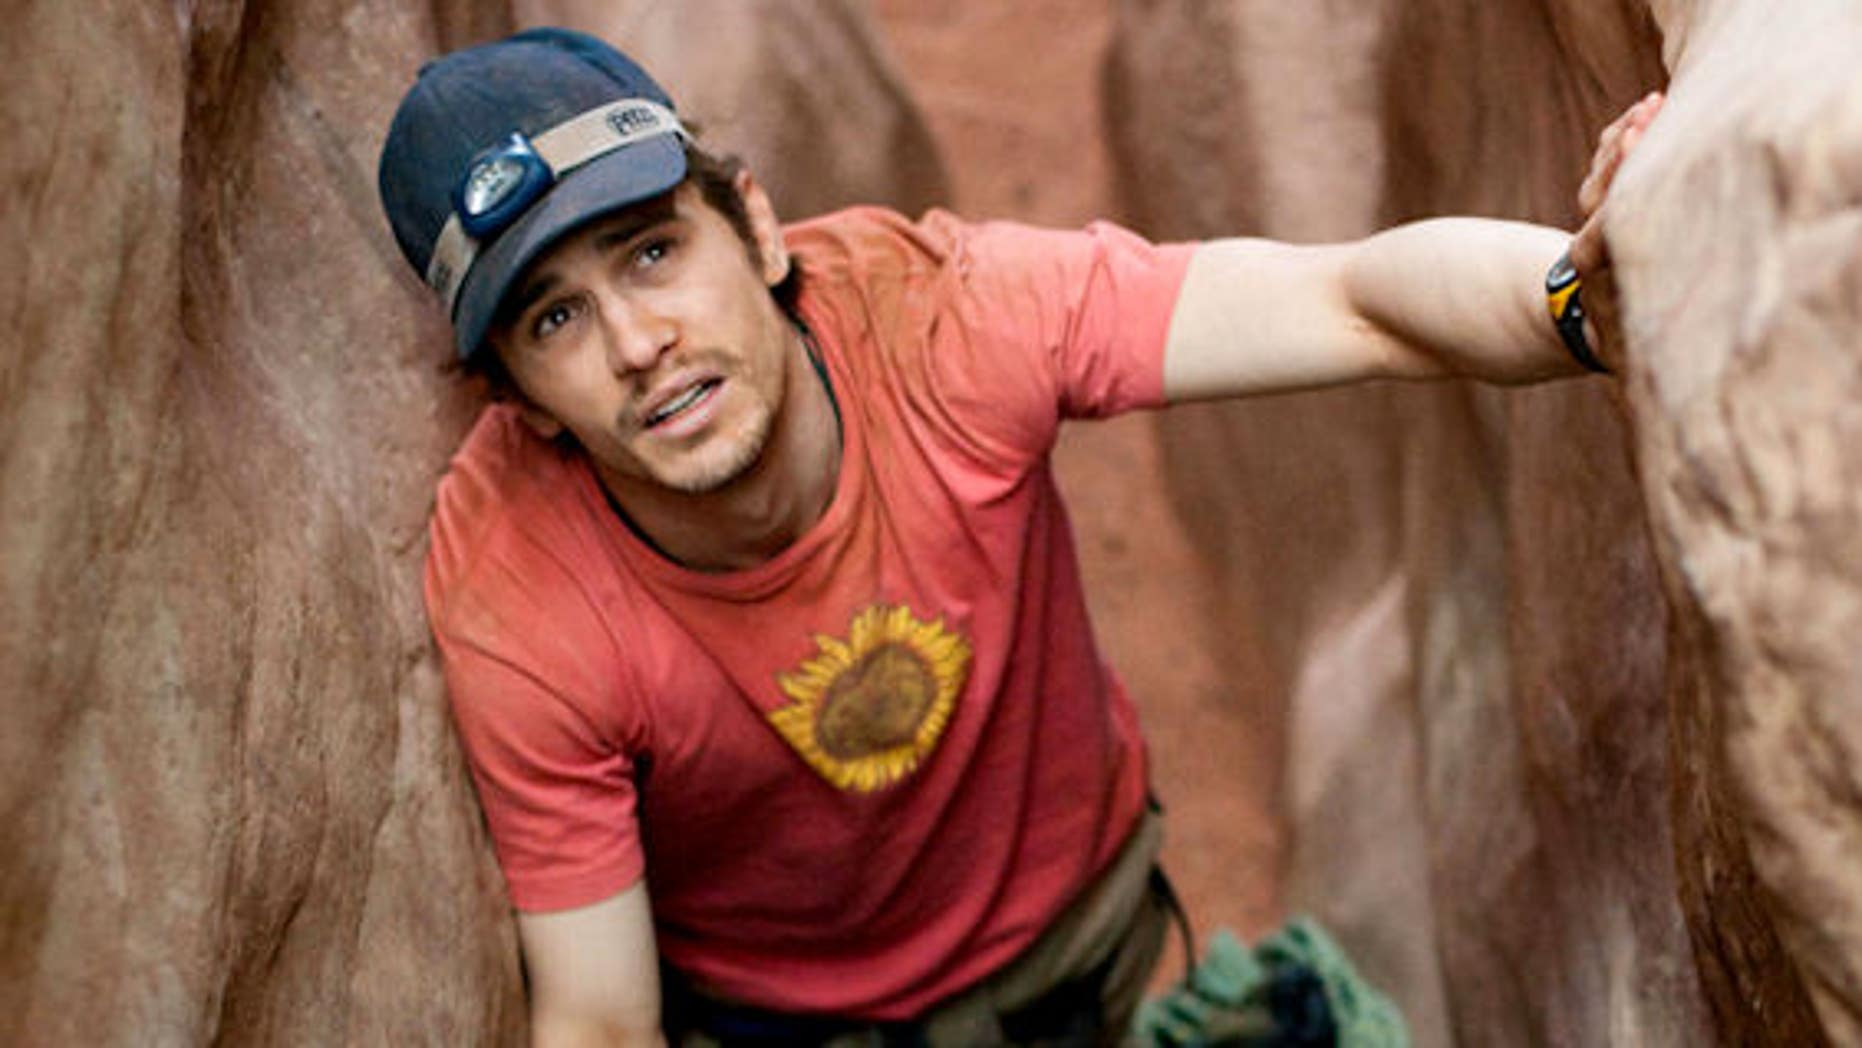 """In this publicity image, James Franco is shown in a scene from """"127 Hours,"""" a film which earned him an Oscar nod. The actor will pursue a PhD from the University of Houston."""